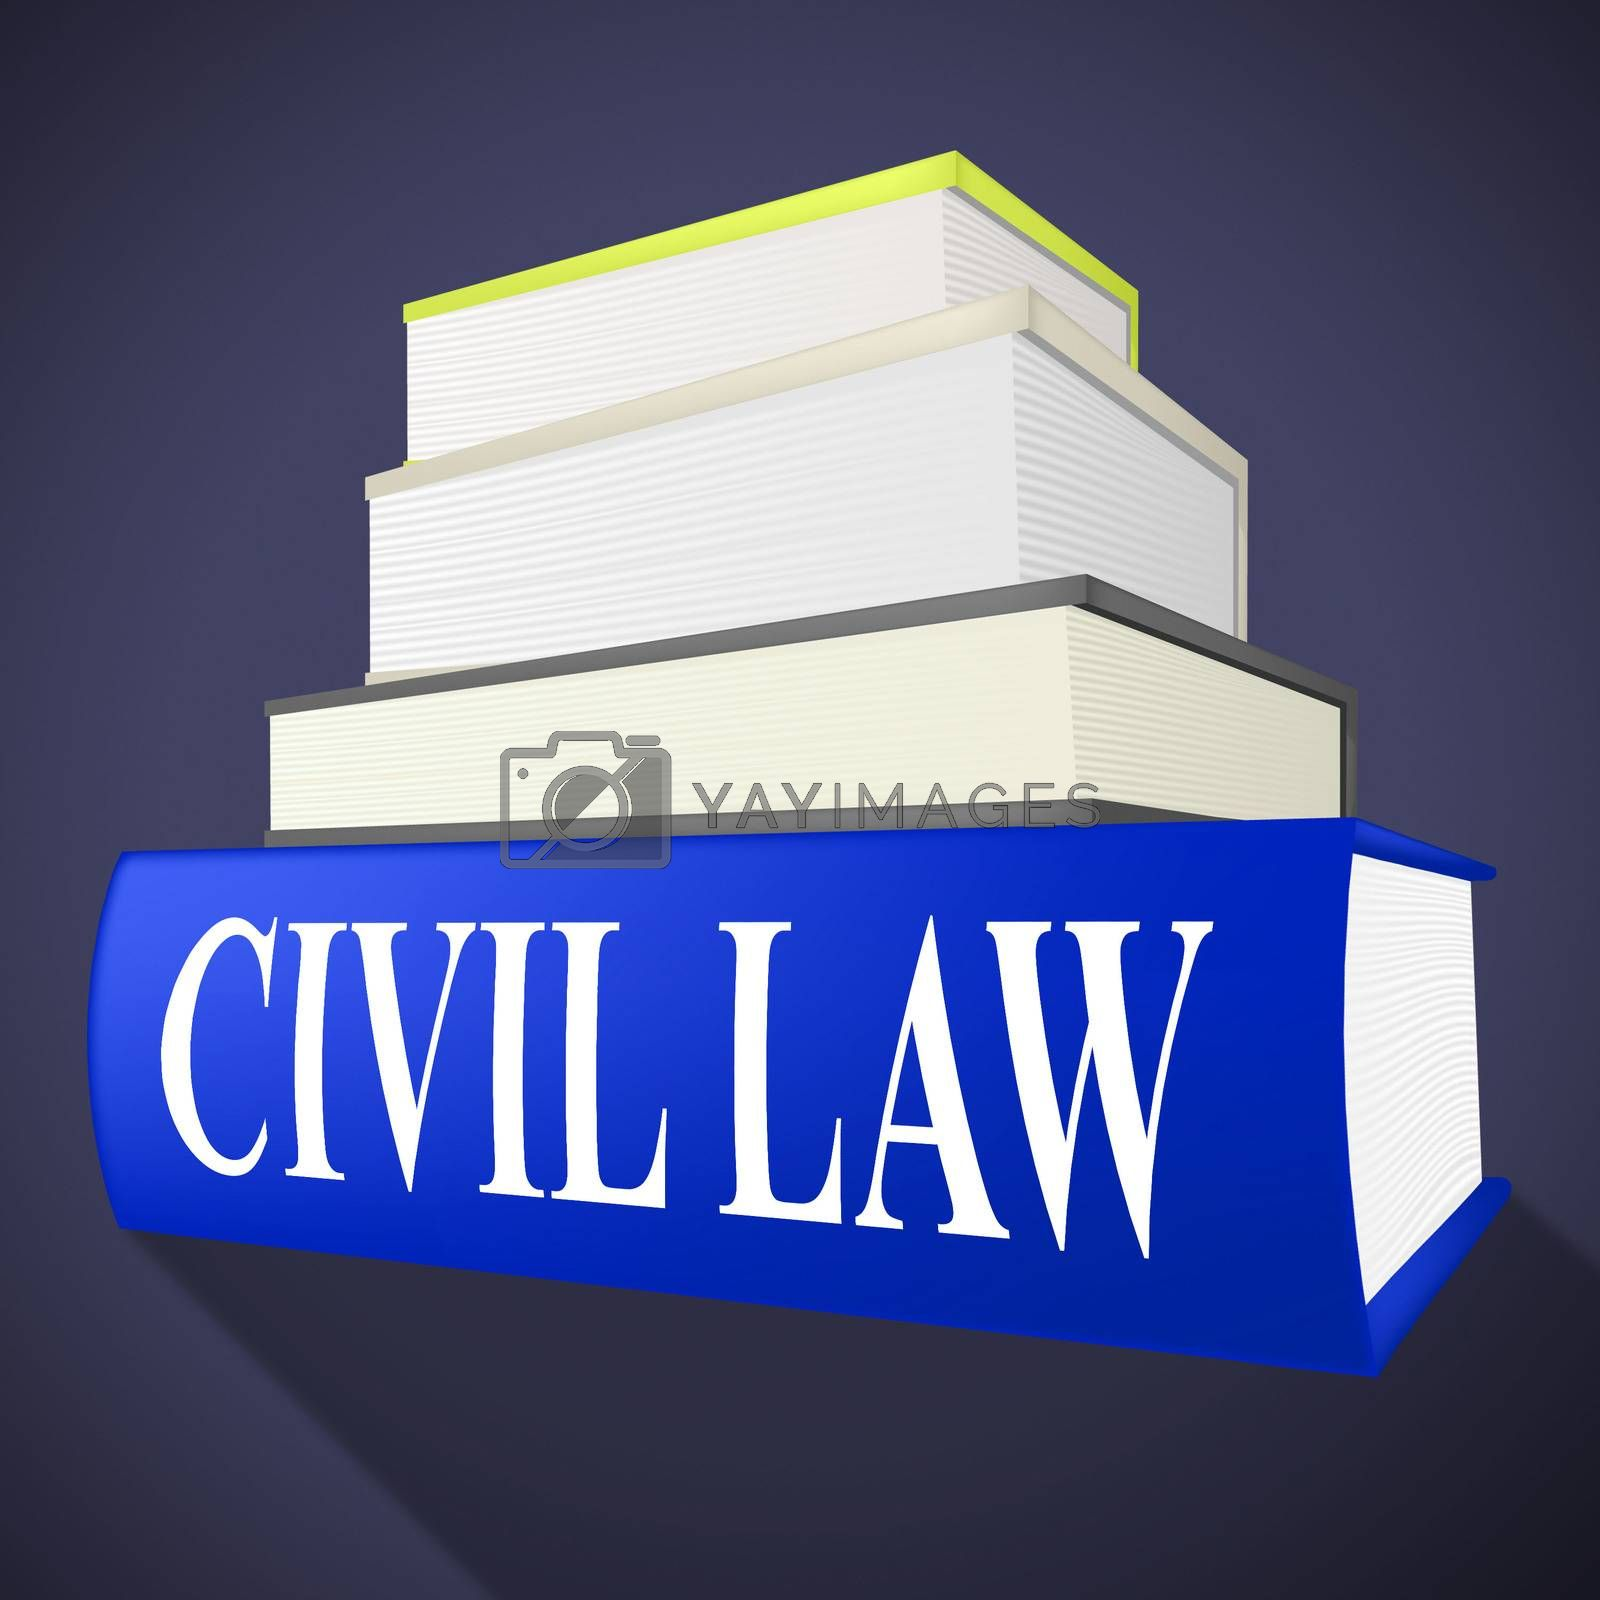 Civil Law Indicates Know How And Attorney by stuartmiles